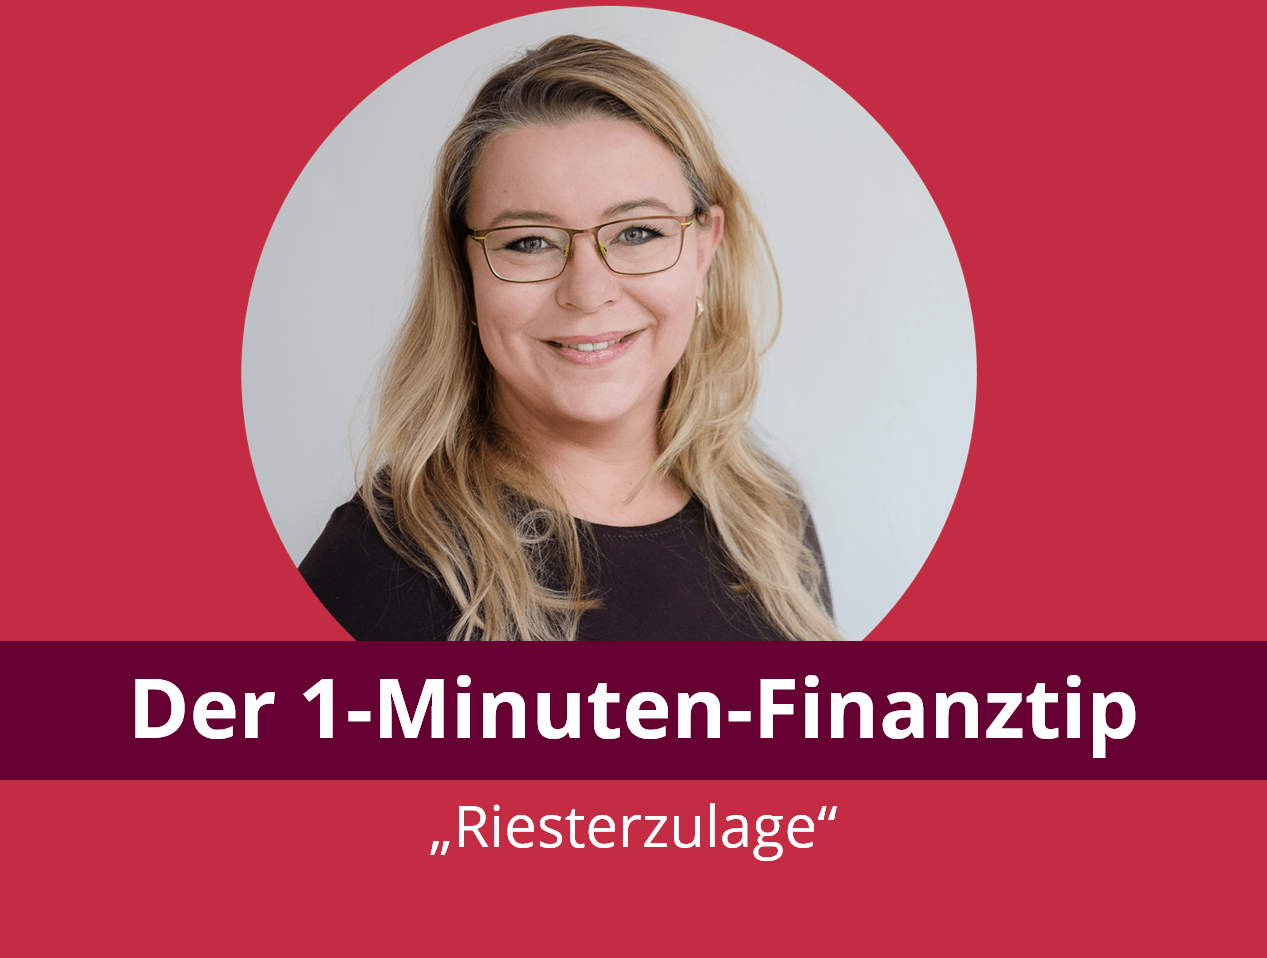 Riesterzulage